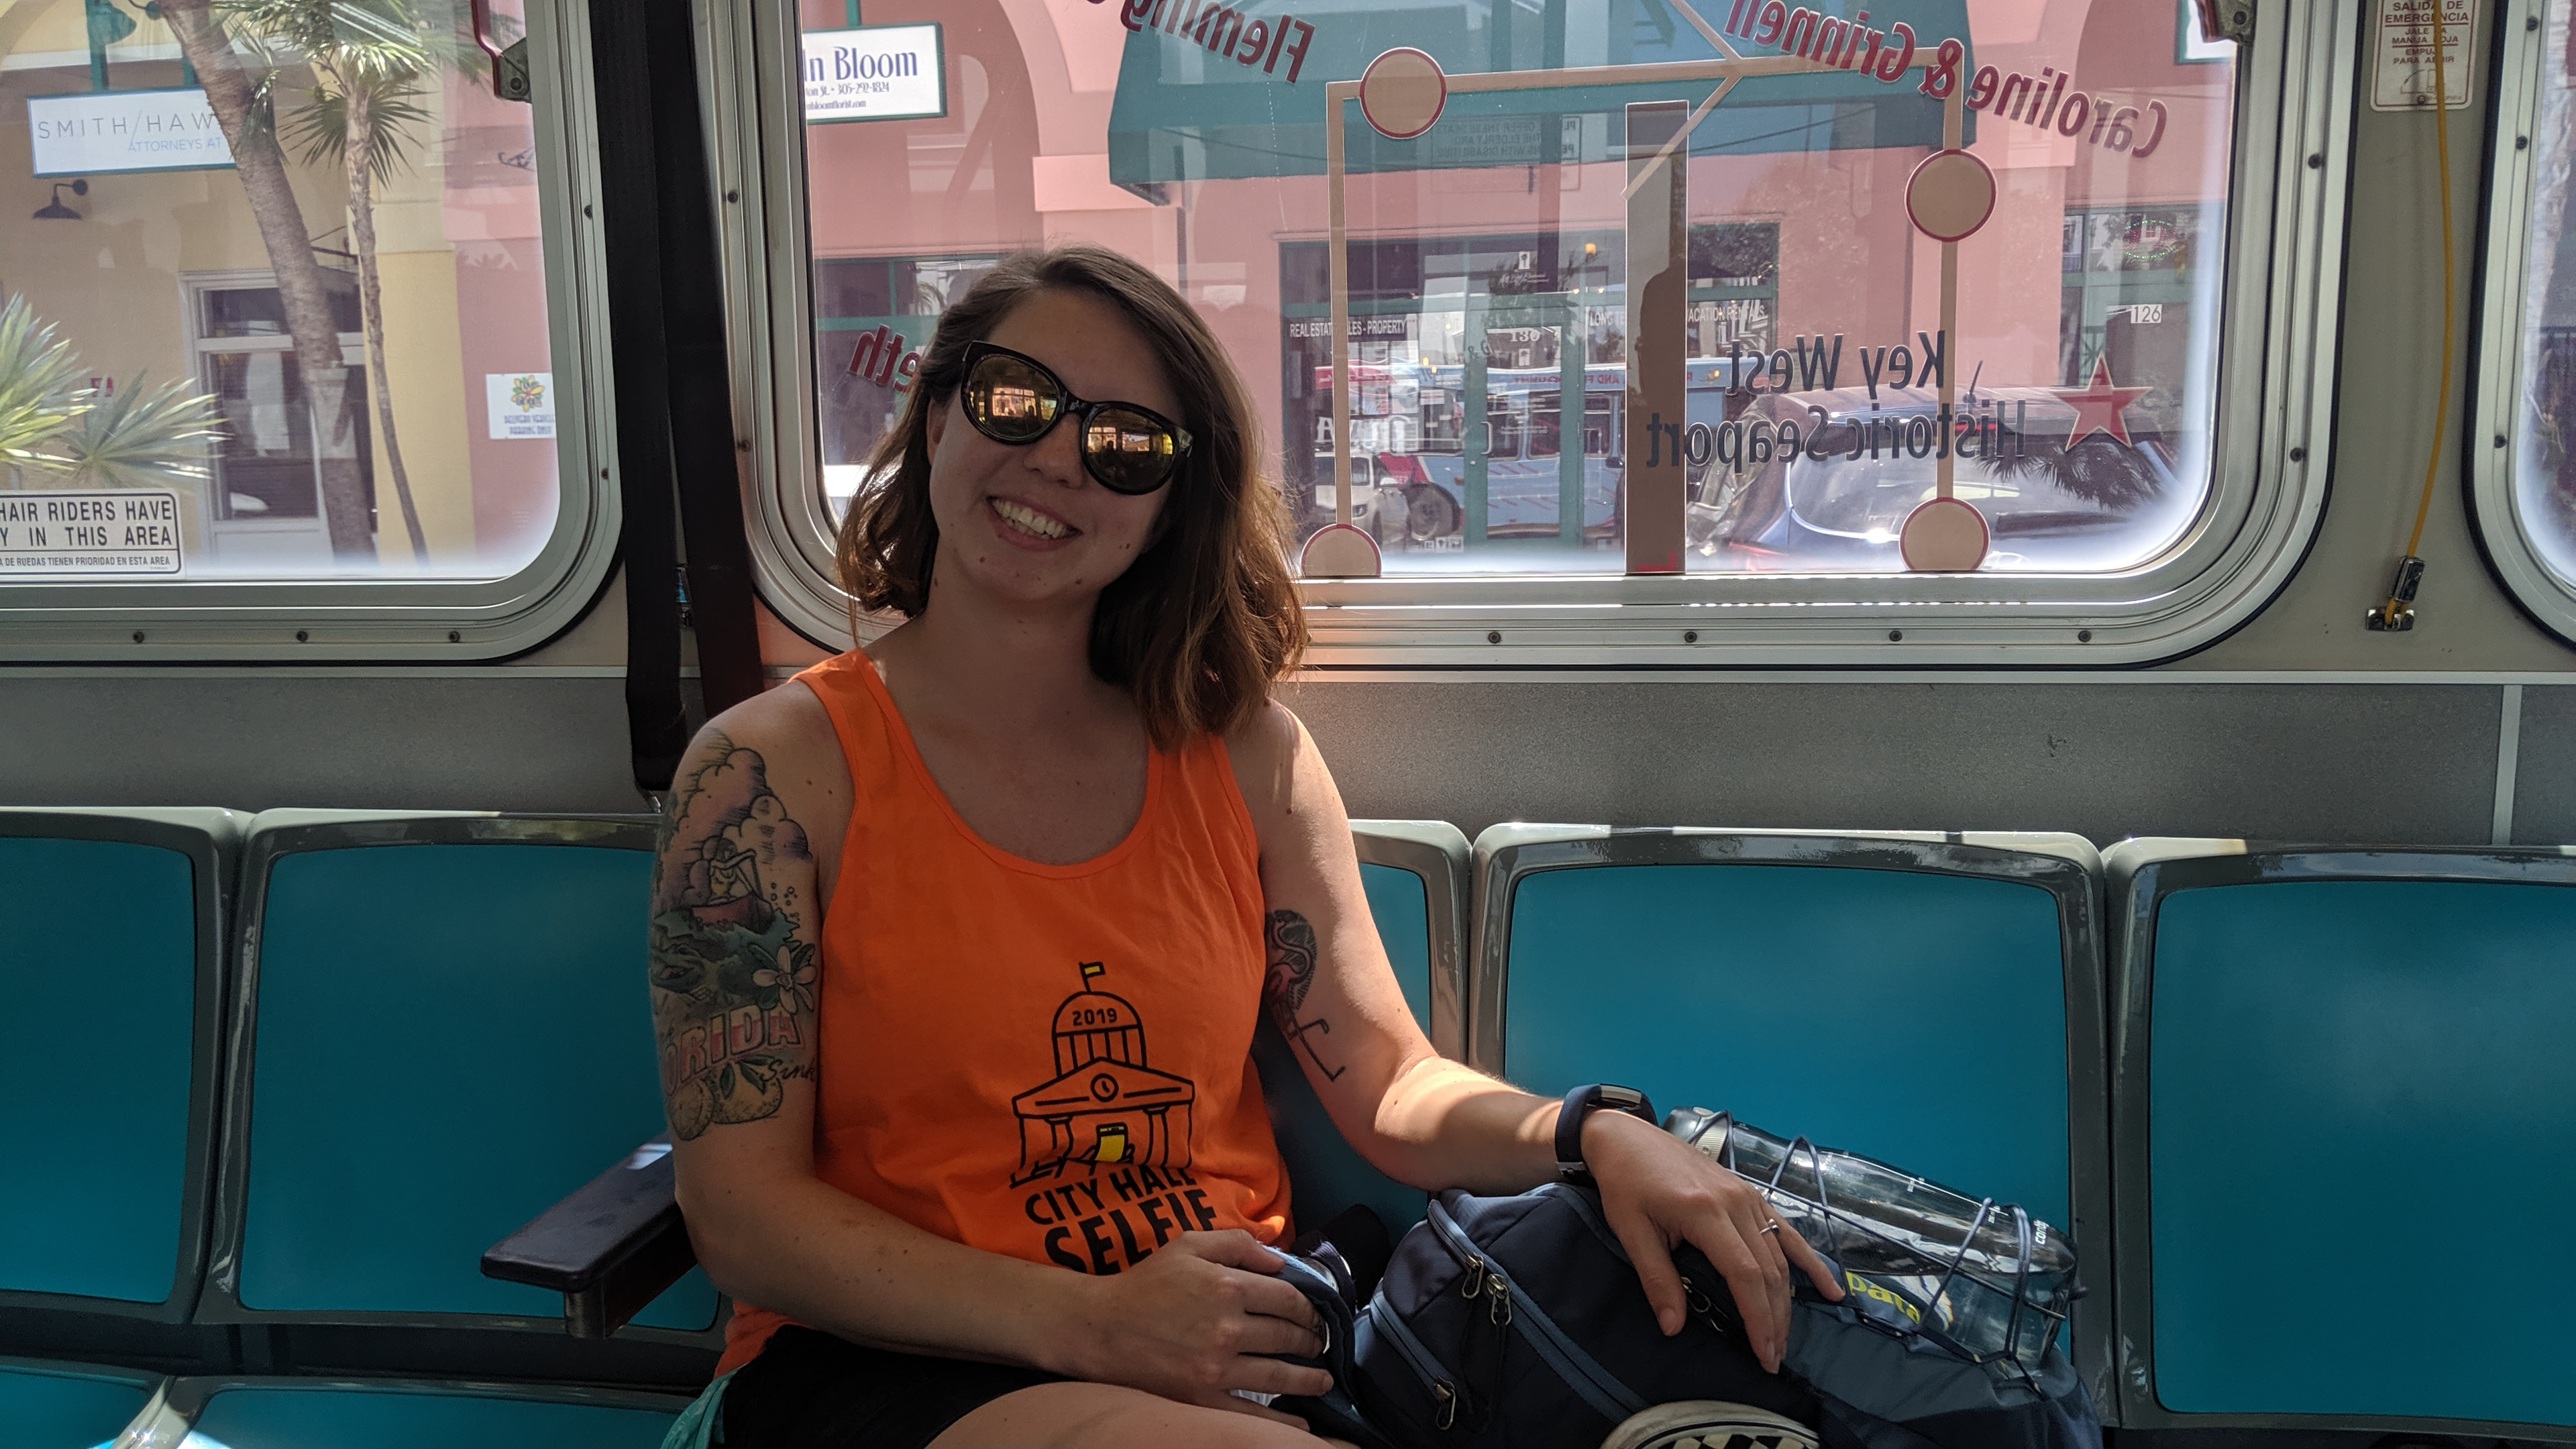 woman smiling on a city bus